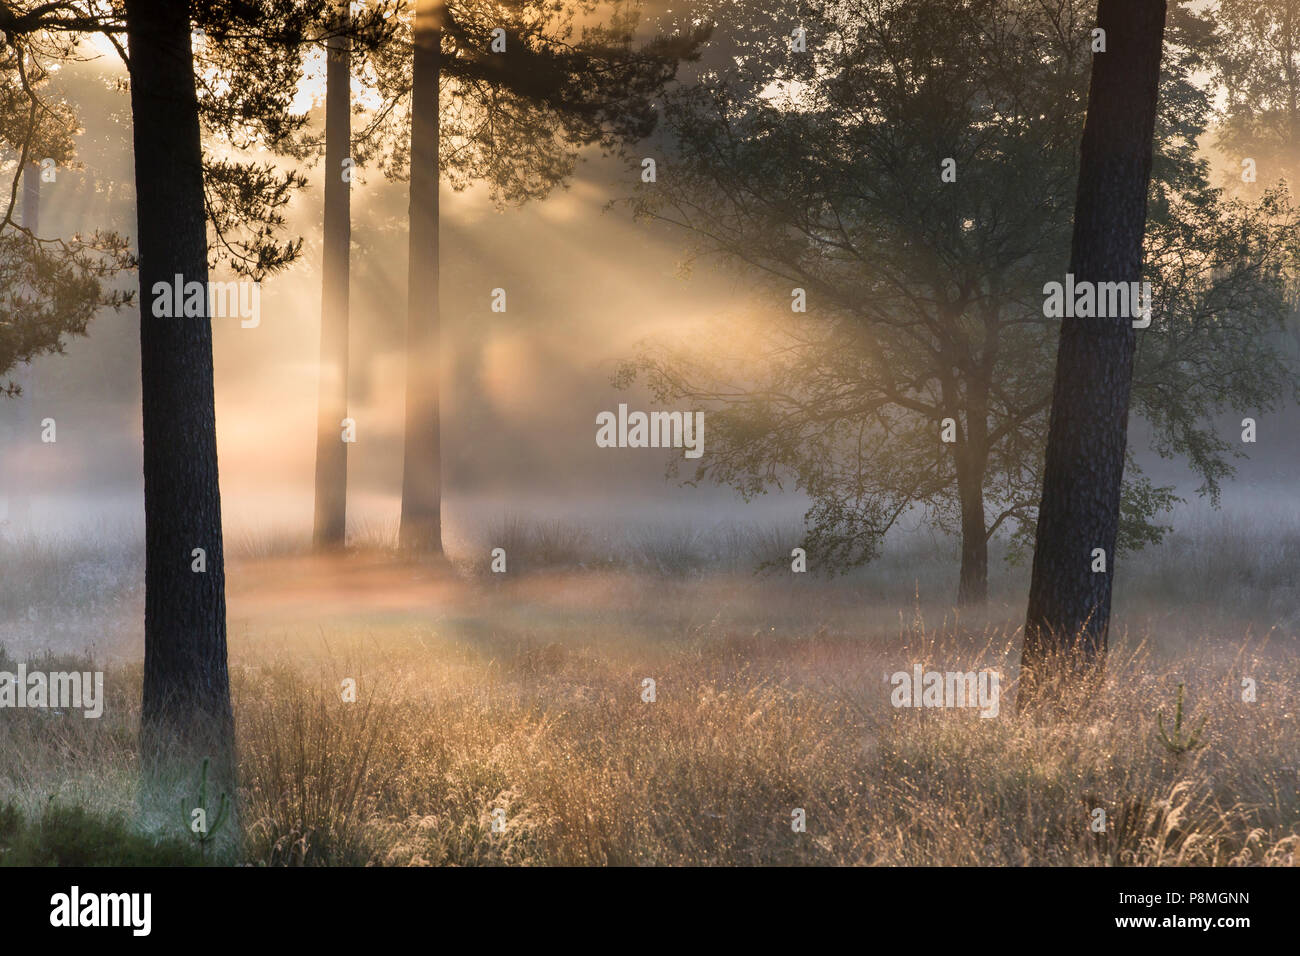 Iridescence in a thin layer of ground fog - Stock Image